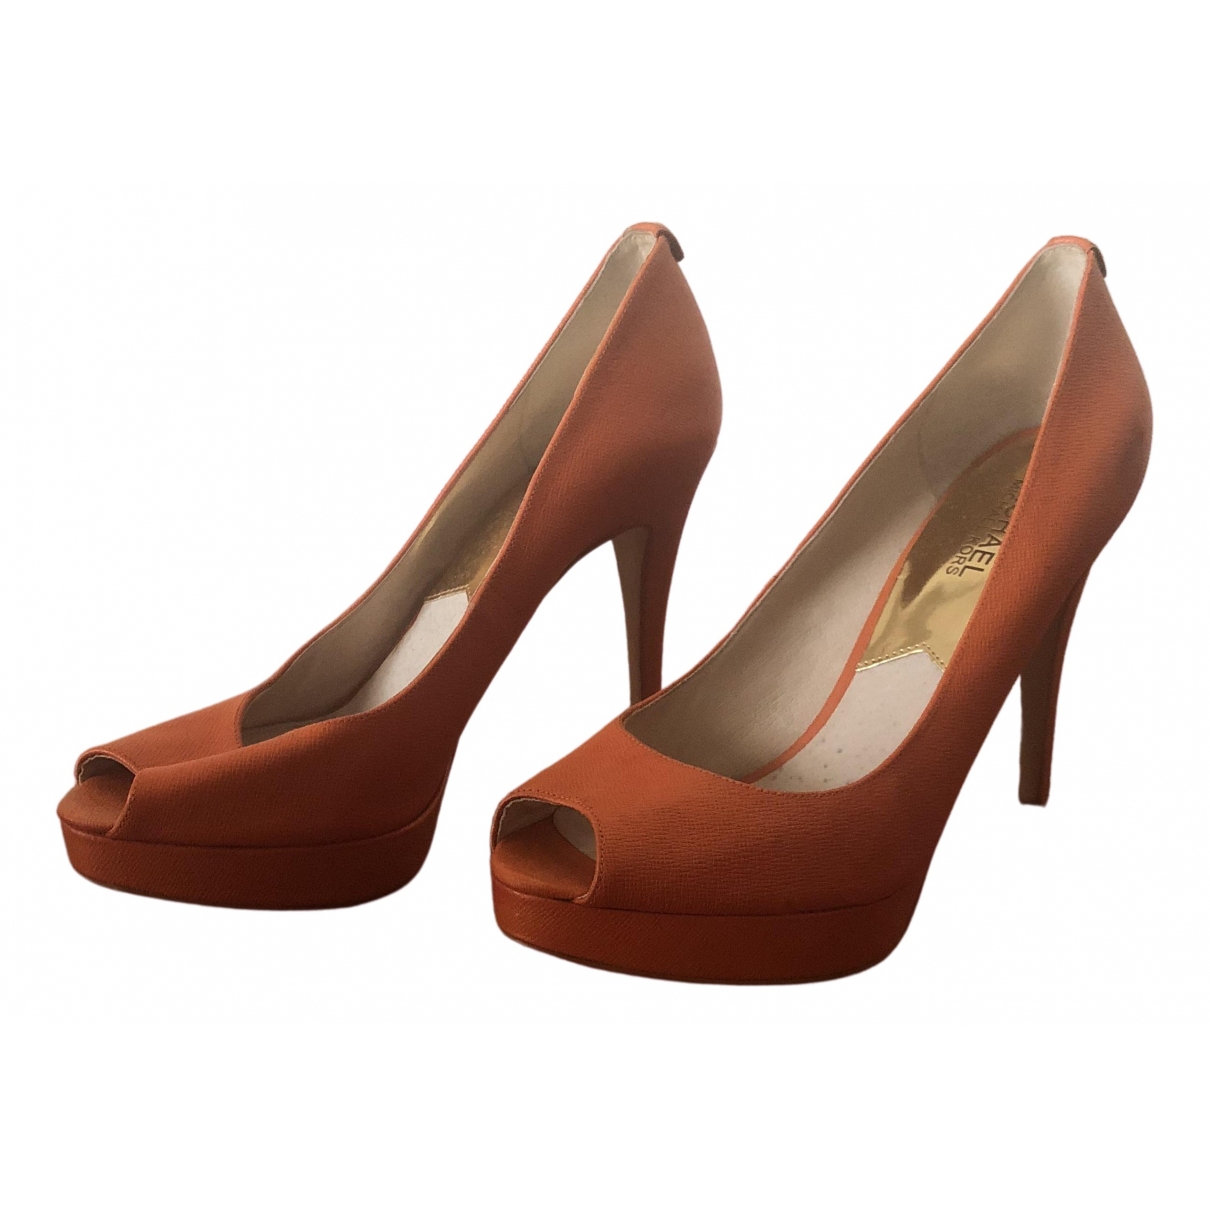 Michael Kors \N Orange Leather Heels for Women 40 EU